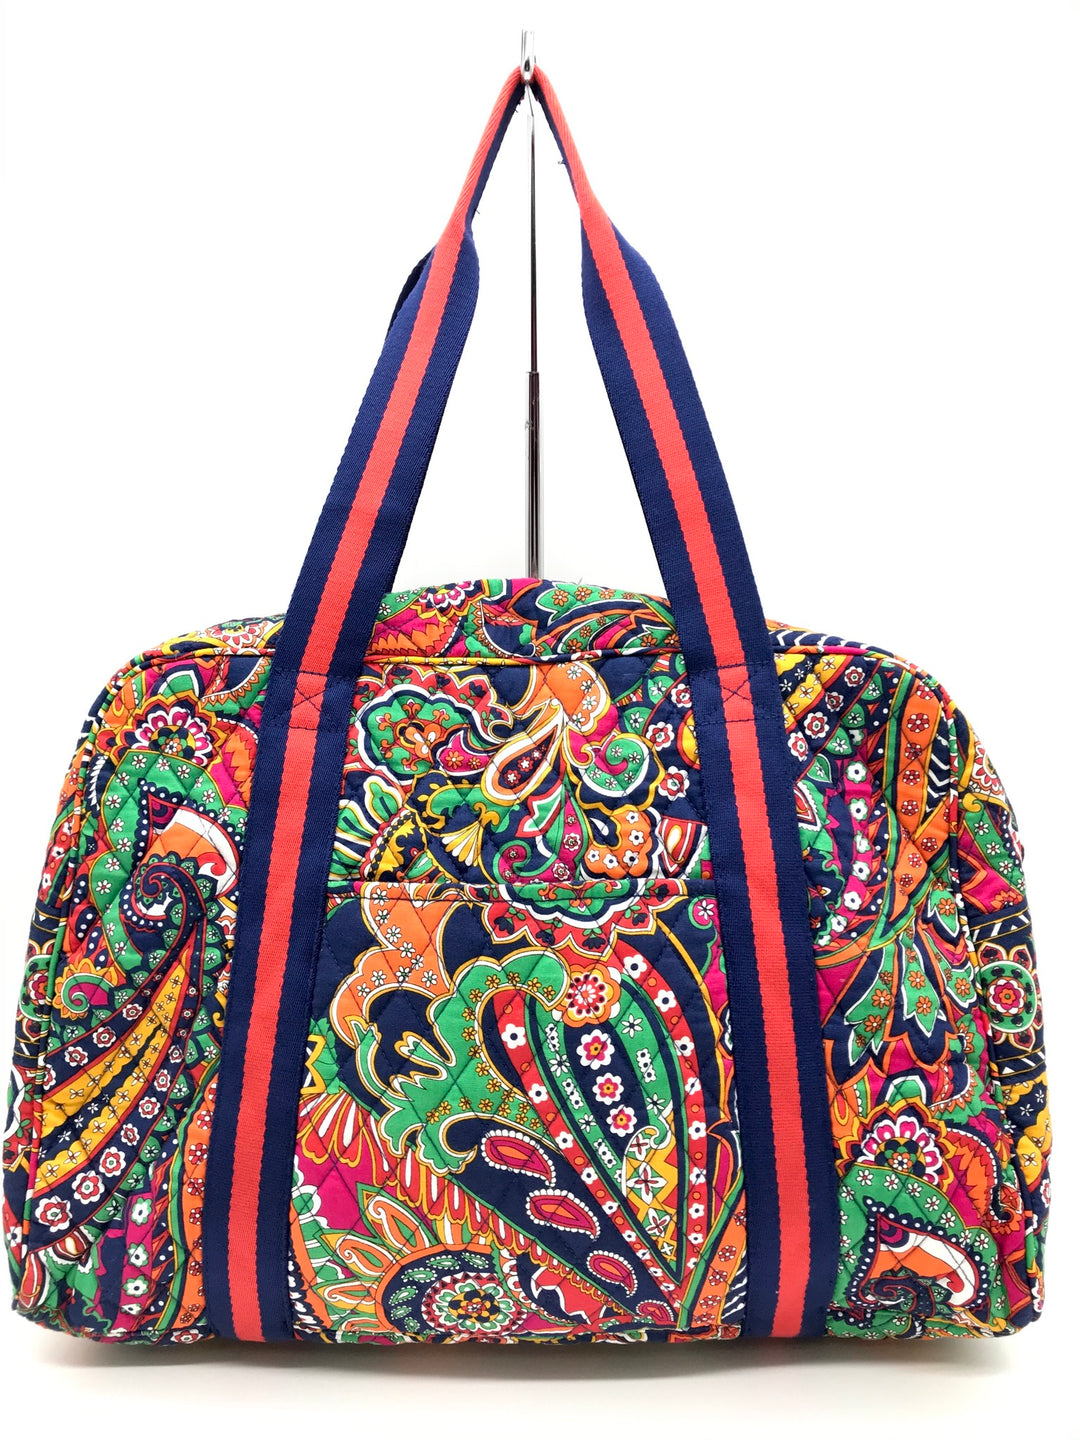 Primary Photo - BRAND: VERA BRADLEY <BR>STYLE: HANDBAG <BR>COLOR: ORANGE BLUE <BR>SIZE: LARGE <BR>SKU: 262-26211-139510<BR>IN GOOD CONDITION - AS IS